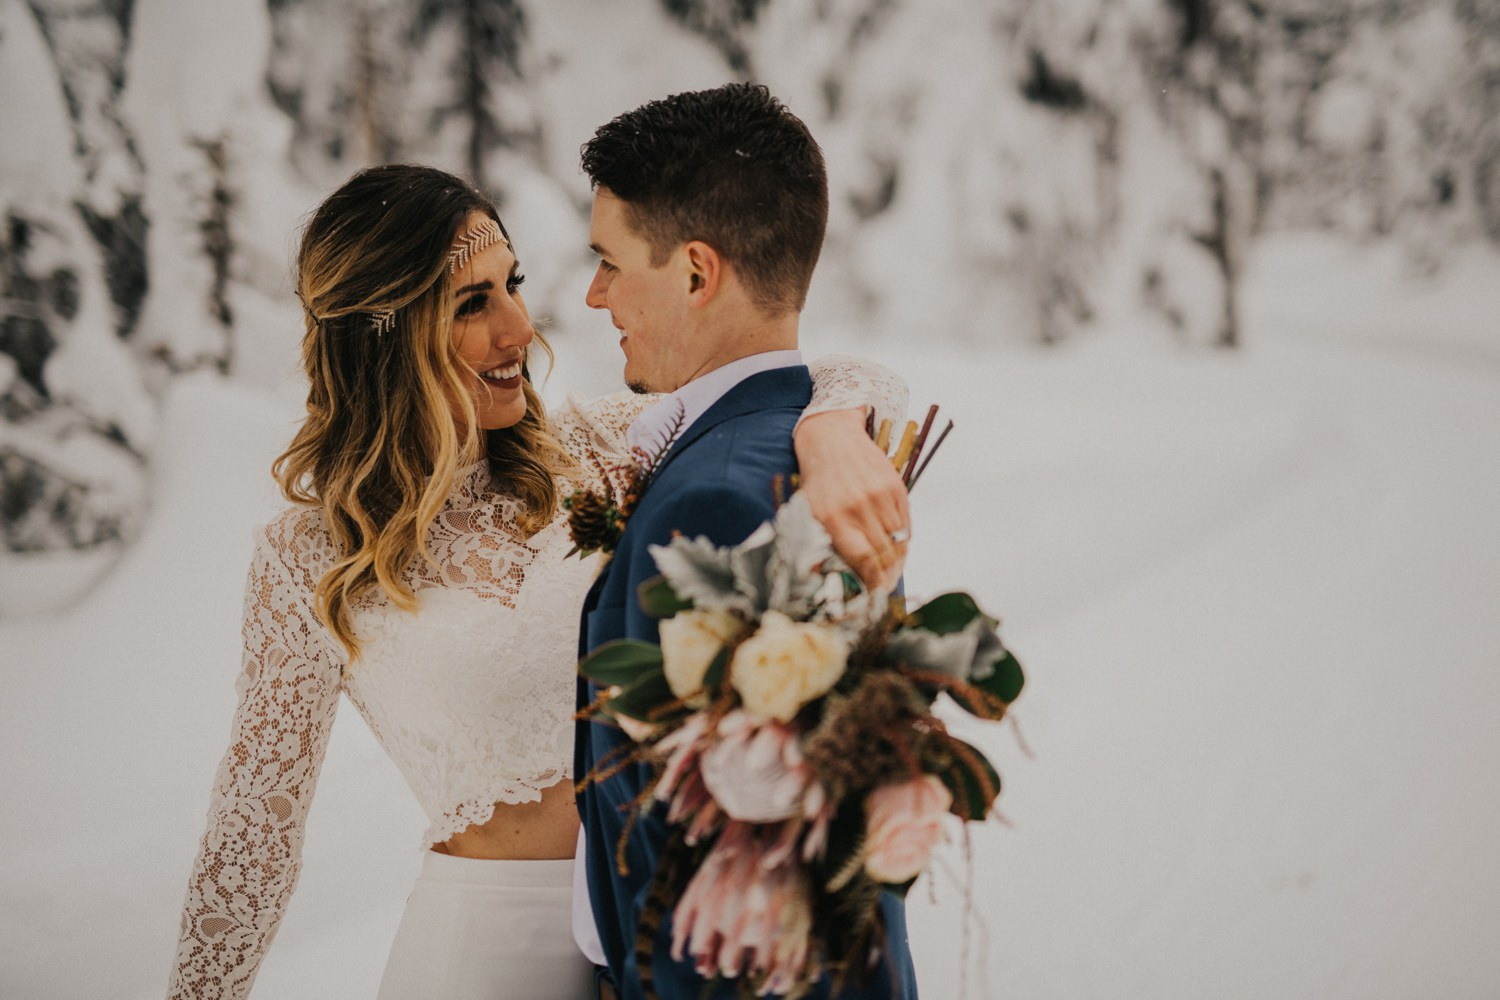 Okanagan Winter Elopement - Joelsview Photography_0035